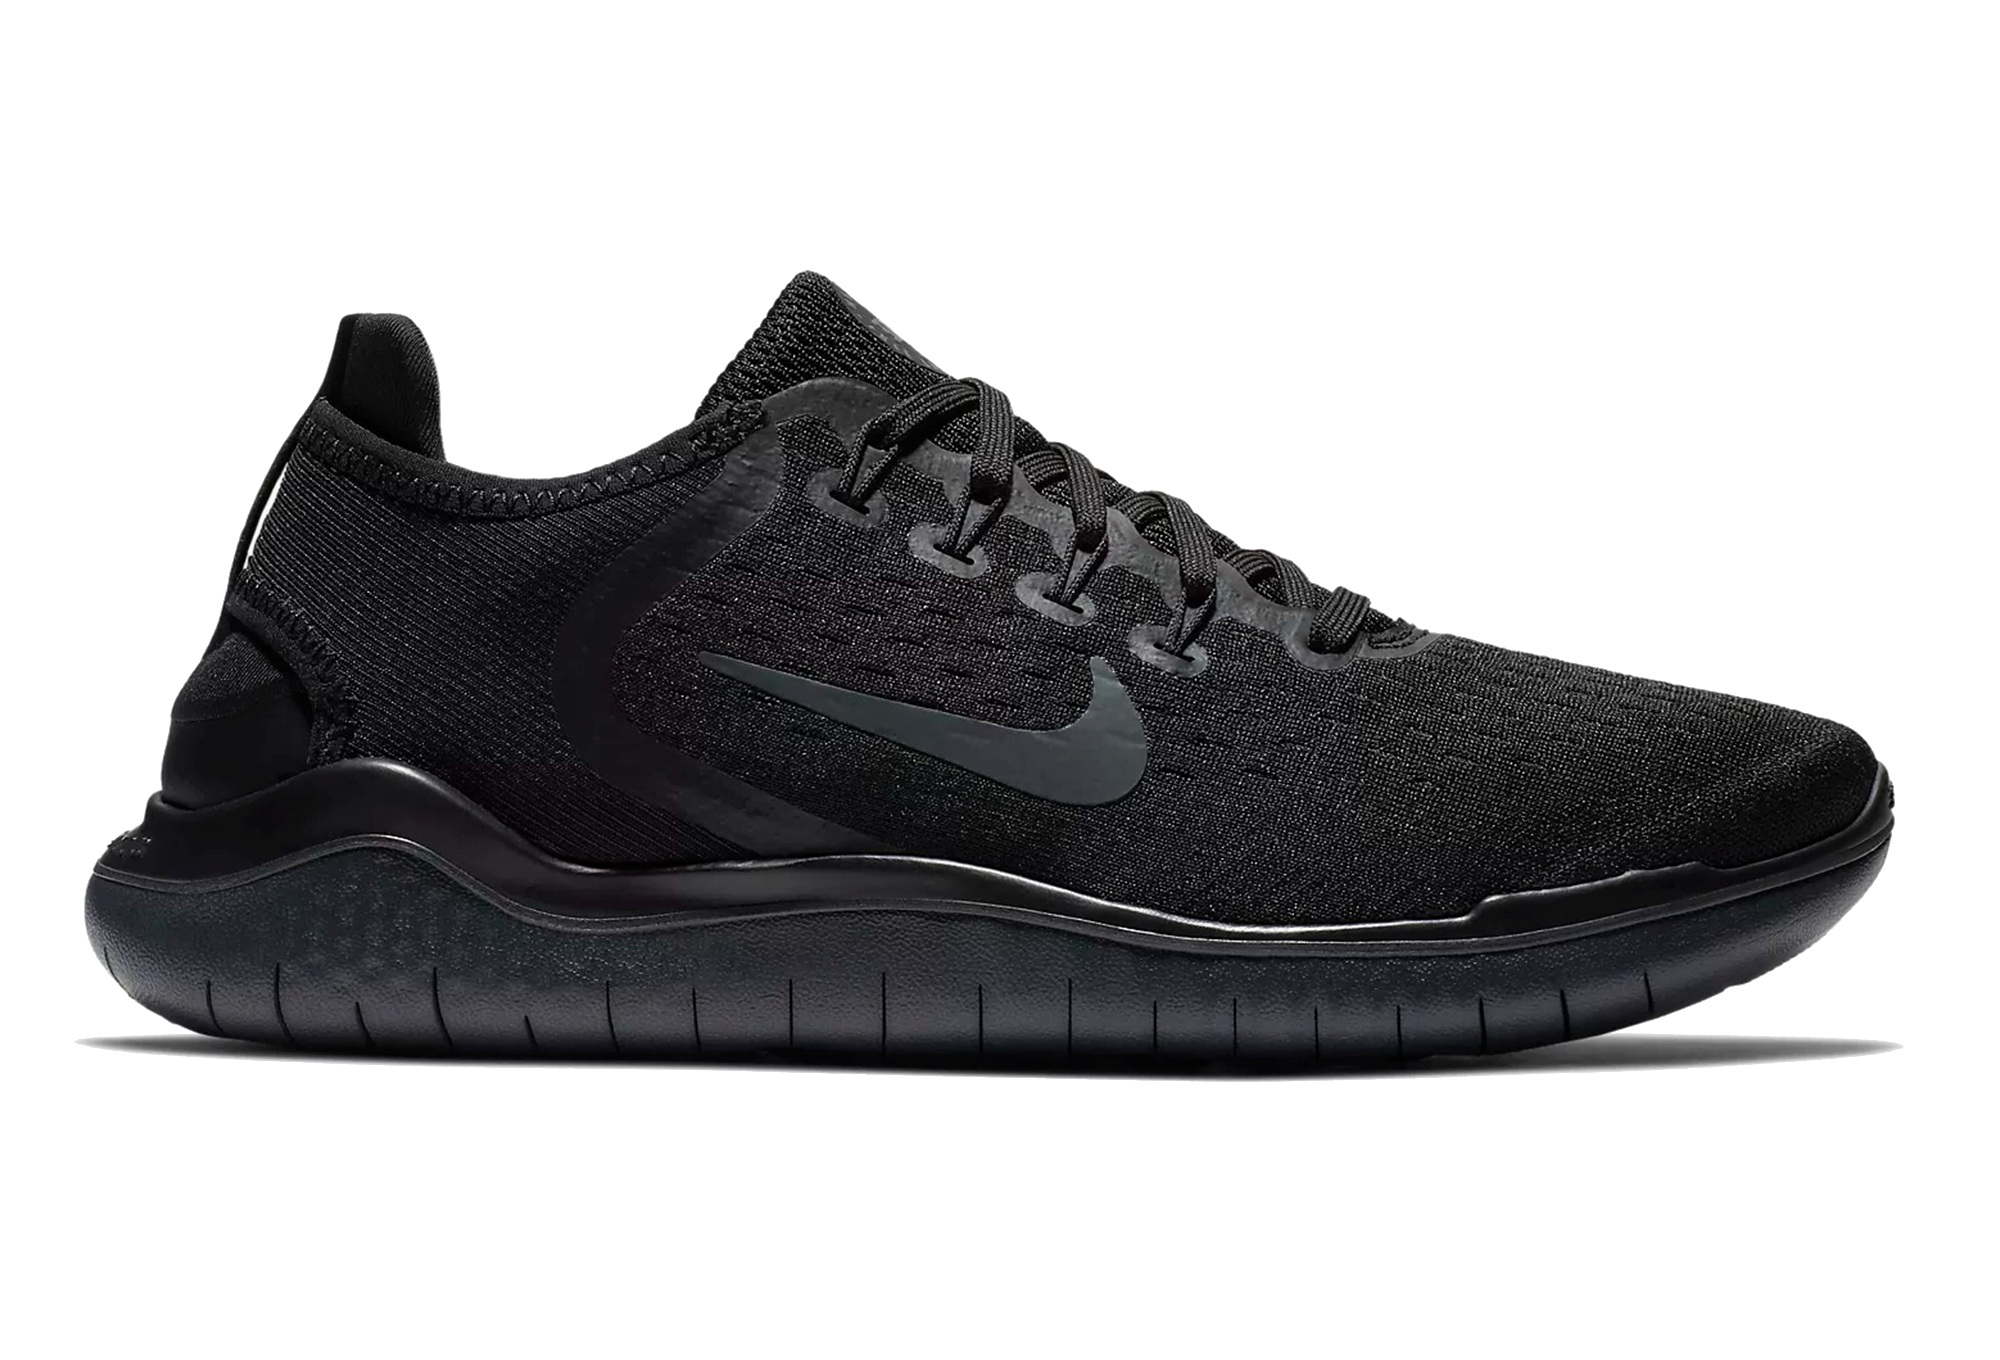 low priced 8b625 a0c33 Scarpe da Running Nike Free RN Nere da Donna 2018